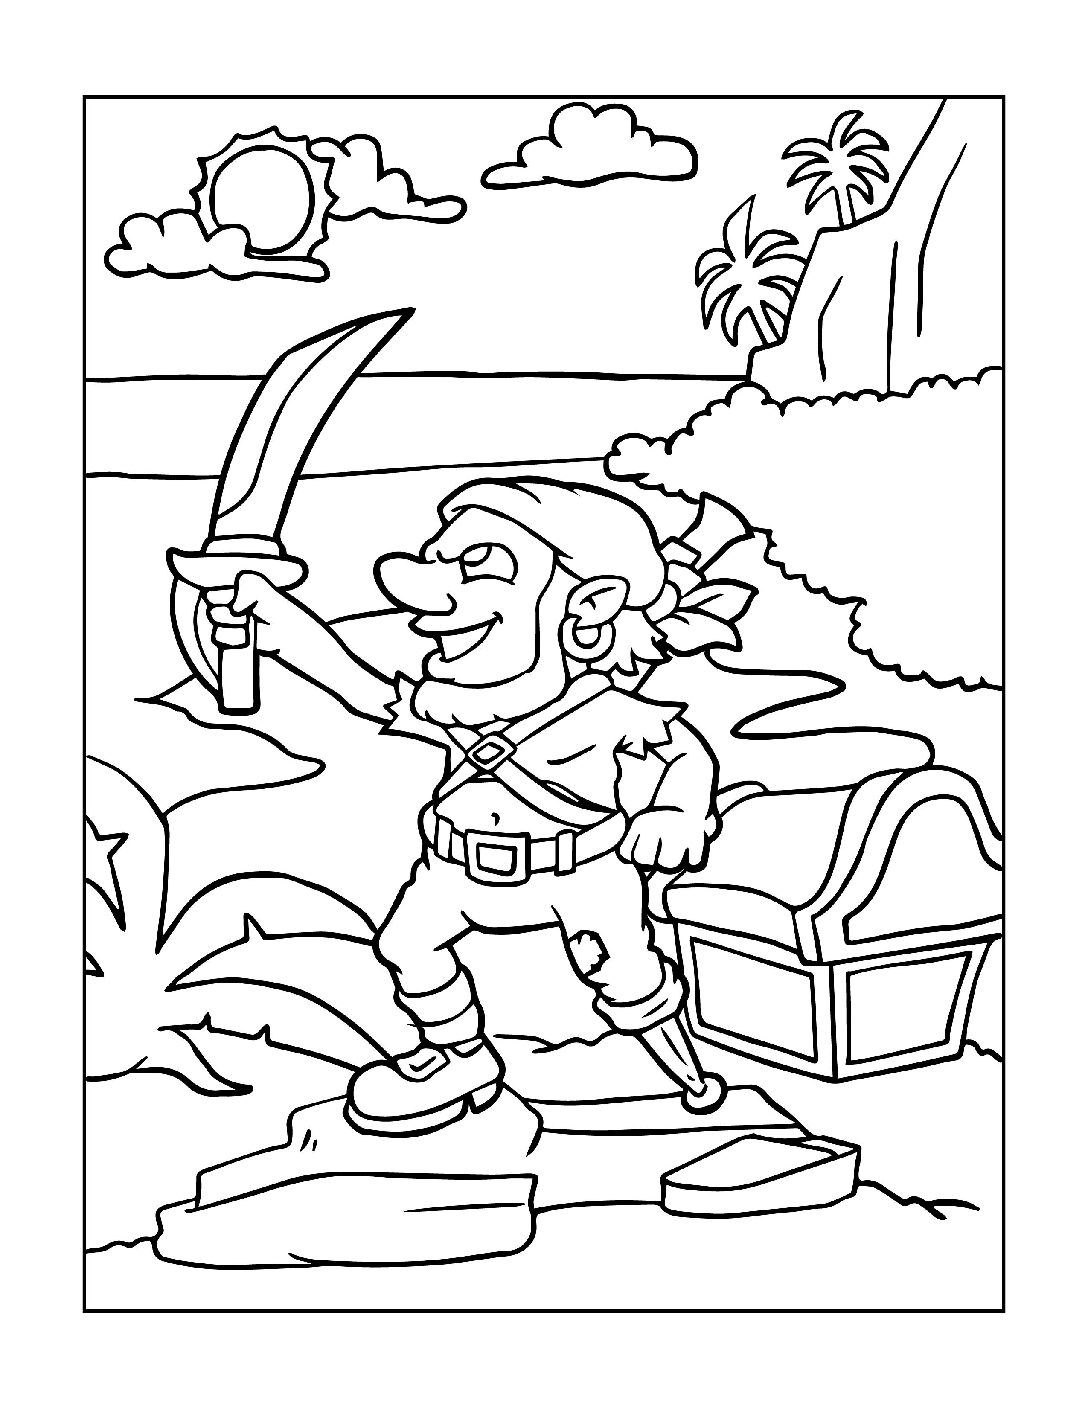 Coloring-Pages-Pirates-and-Knights-for-Boys-9-01-pdf Free Printable Pirates &  Knights Colouring Pages